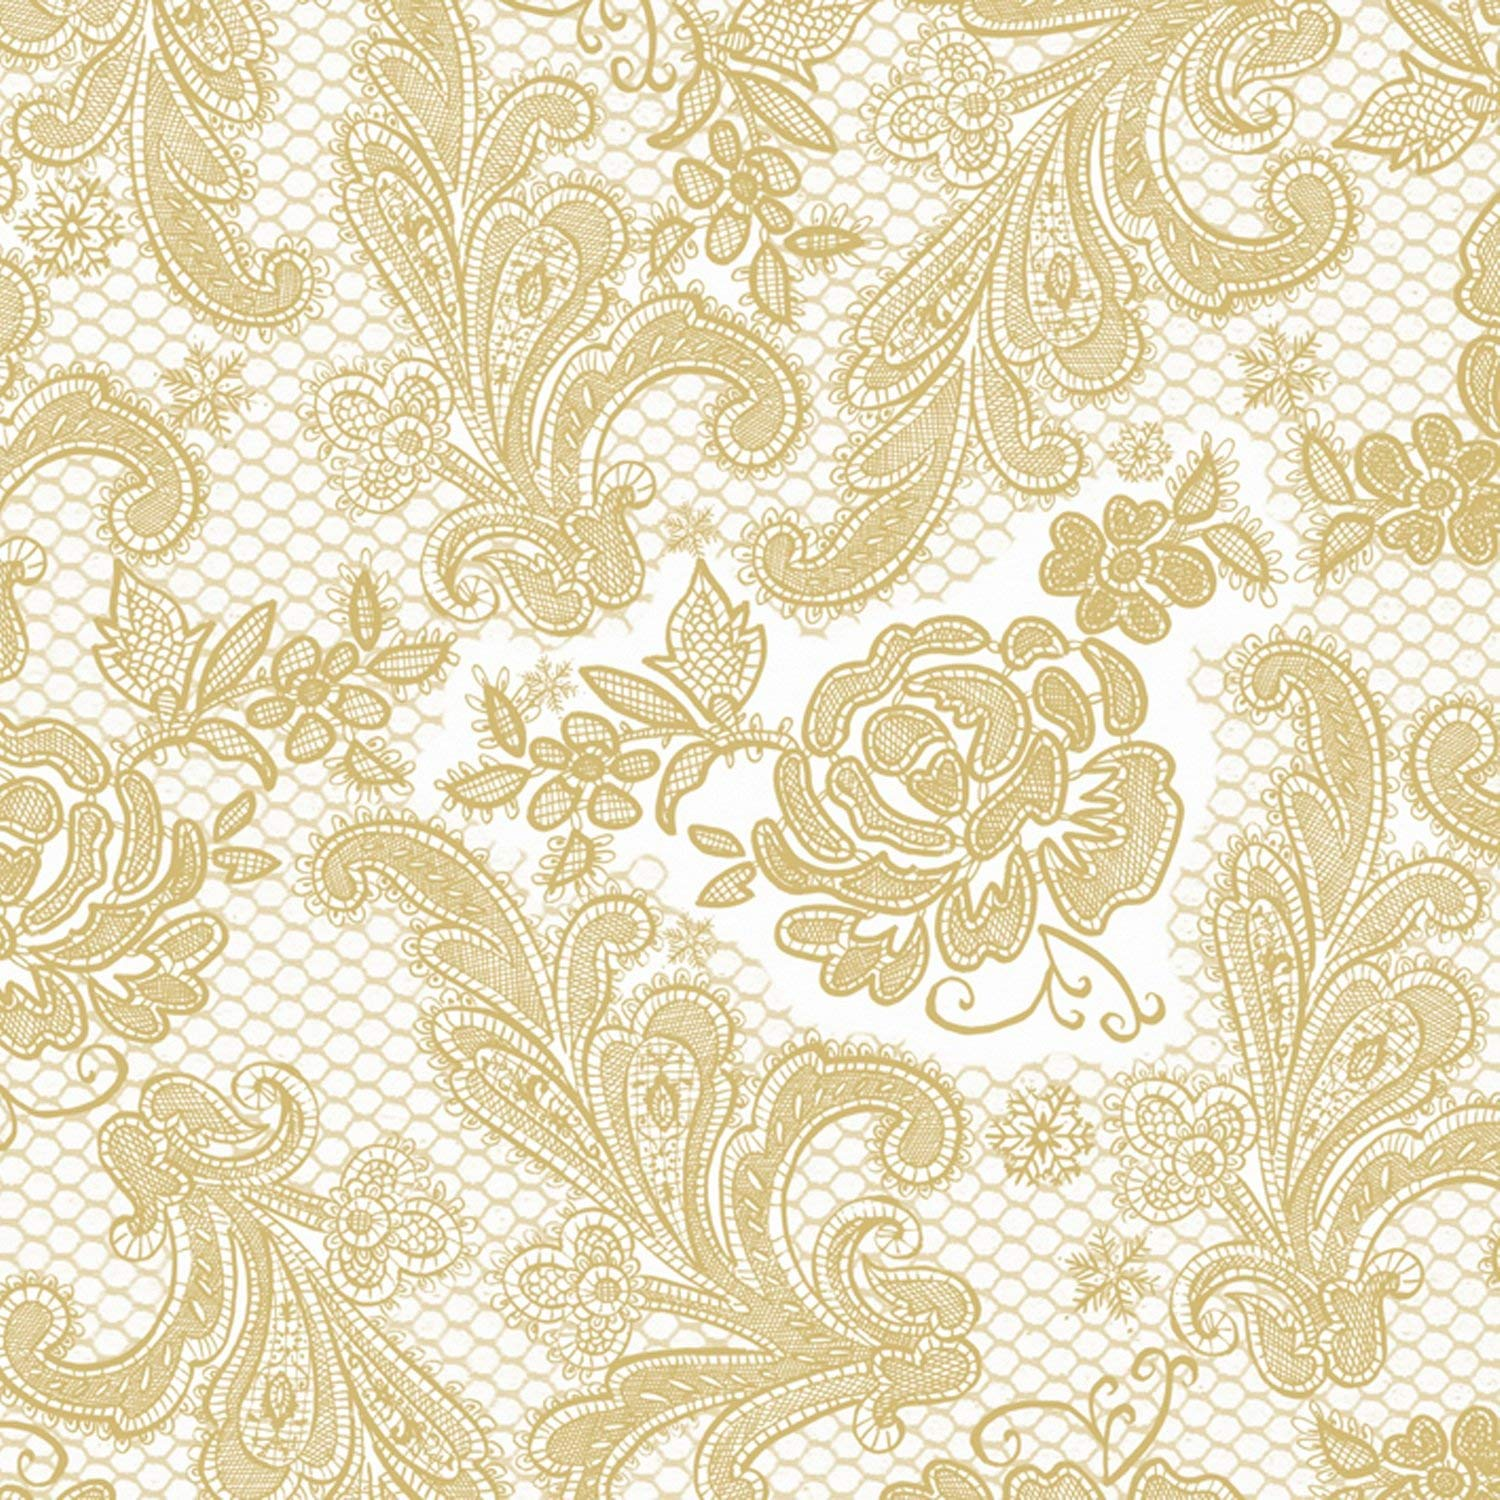 Silver//White Paperproducts Designs 1411052 15-Pack Lace Royal Elegant Guest Towels